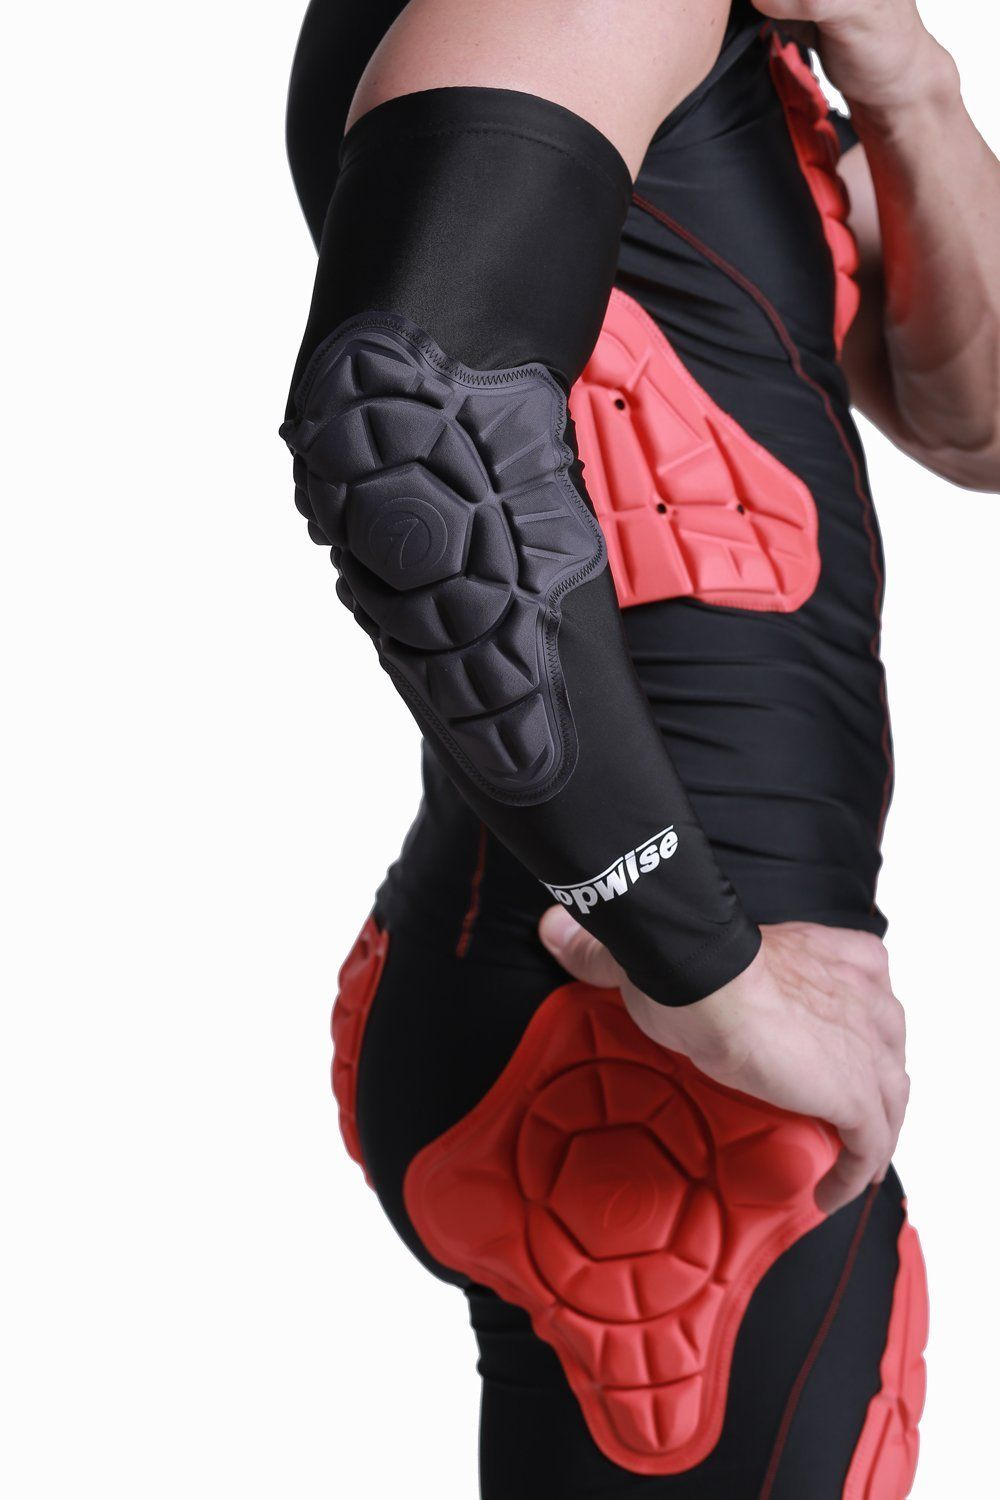 fcd66a50582f Amazon.com   DGYAO Basketball Protector Gear Hand Compression Padded Arm  Long Sleeve Crashproof Antislip Arm Elbow Guards   Sports   Outdoors